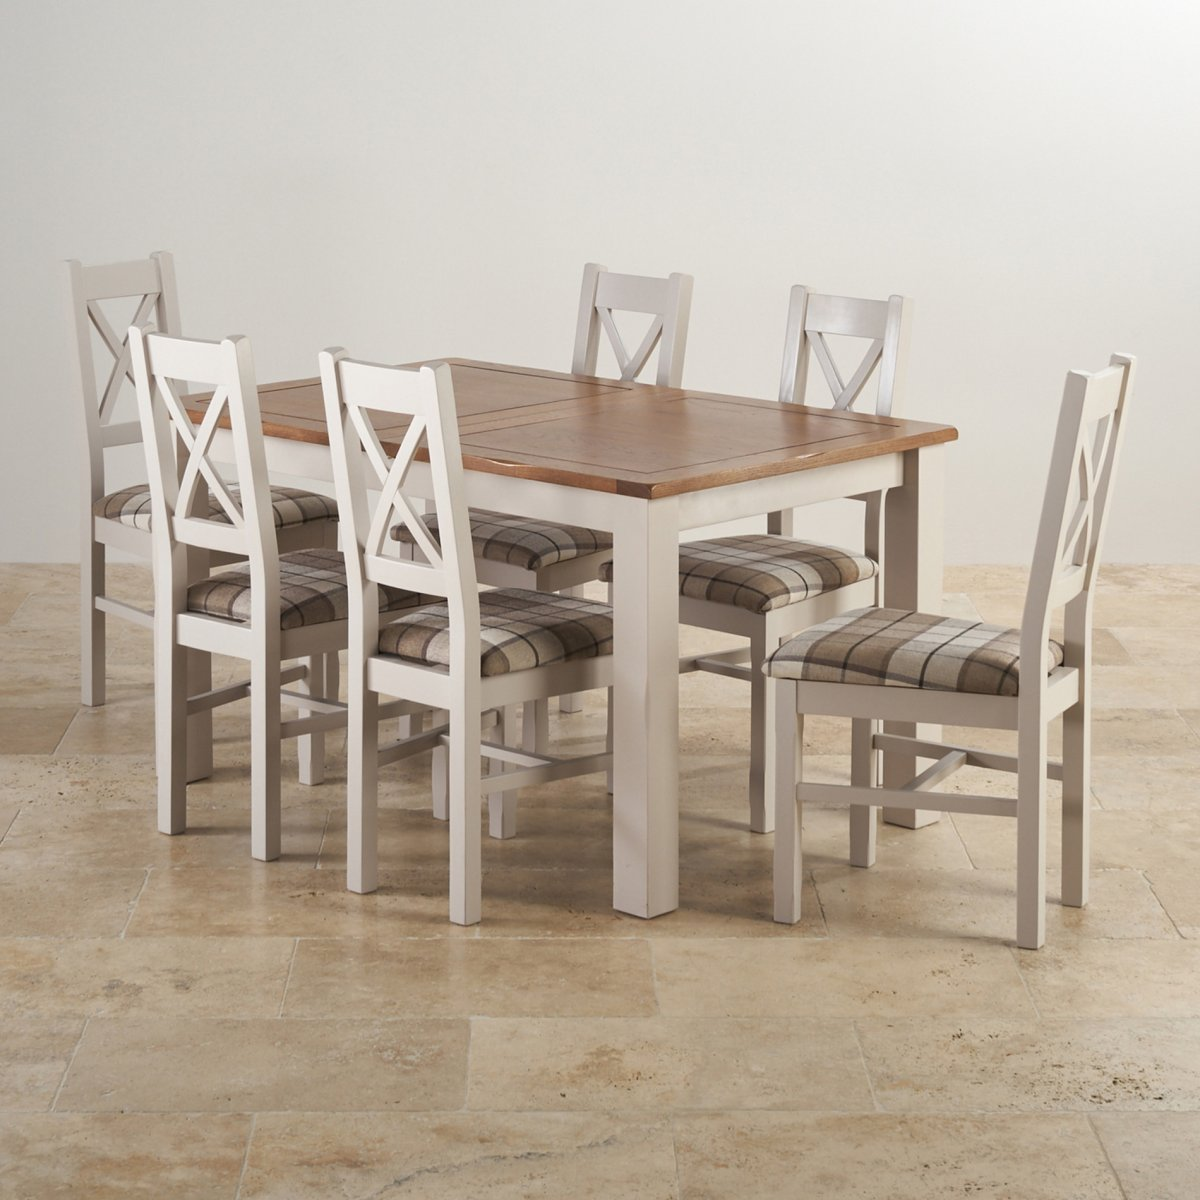 Kemble Extending Dining Set Table 6 Charcoal Fabric Chairs : kemble rustic solid oak and painted 4ft 7 x 3ft extending dining table with 6 kemble chairs 57a8919b89cf60f1f8ca095f4bc0dcf1f9f0f290f67c5 from www.oakfurnitureland.co.uk size 1200 x 1200 jpeg 157kB